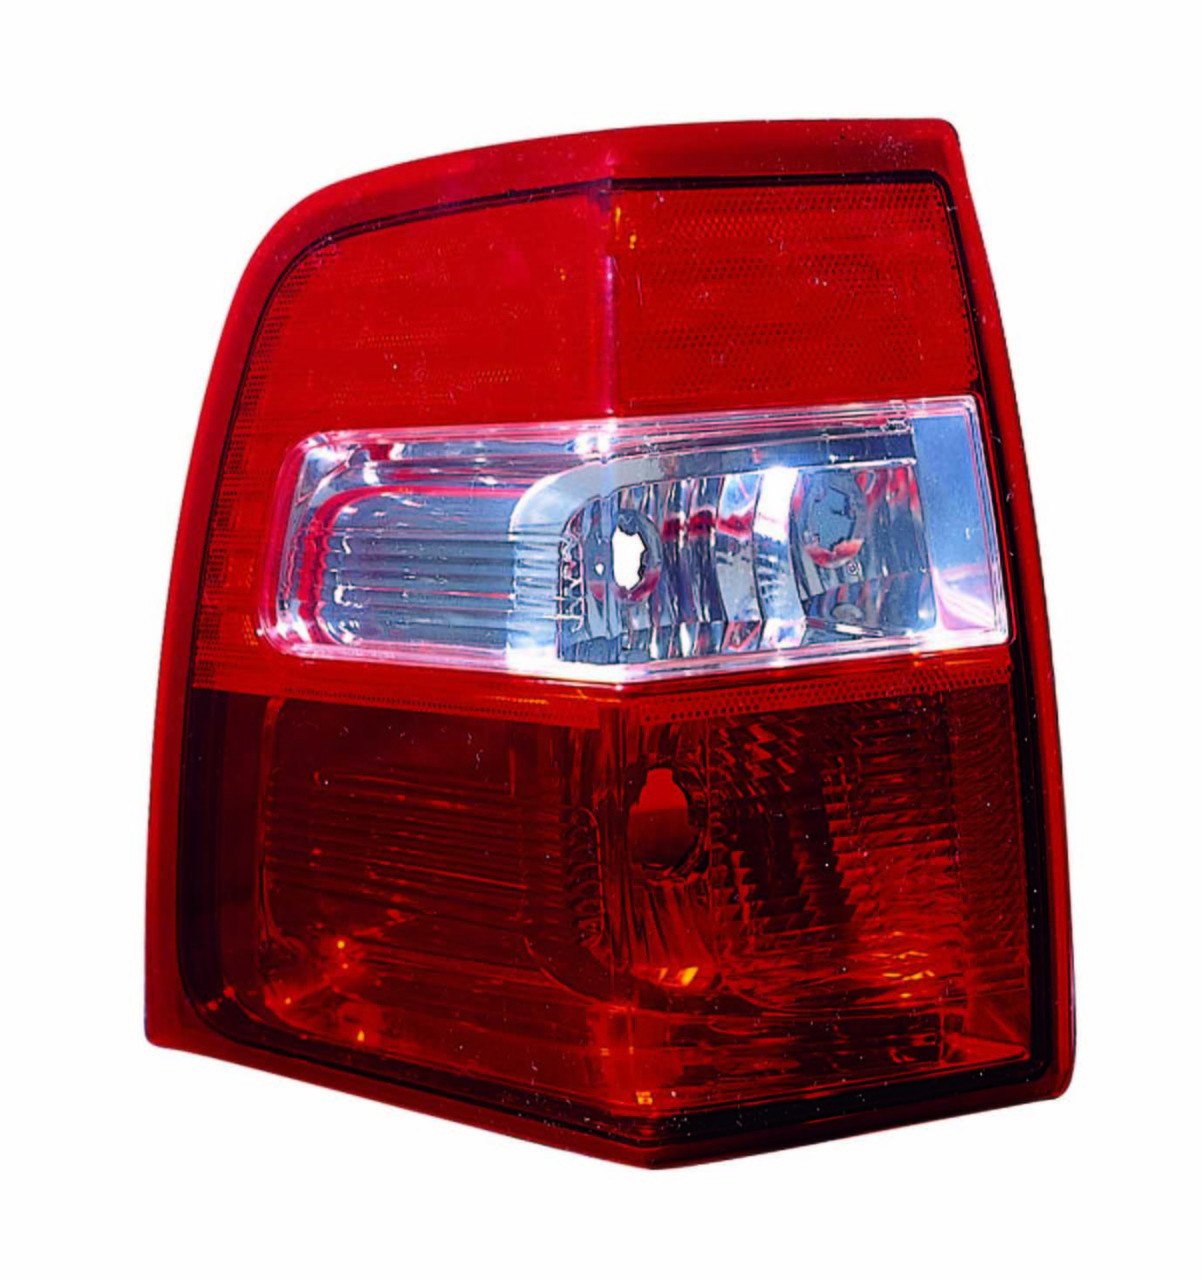 Ford Expedition 2007 2008 2009 2010 2011 2012 2013 2014 tail light left driver